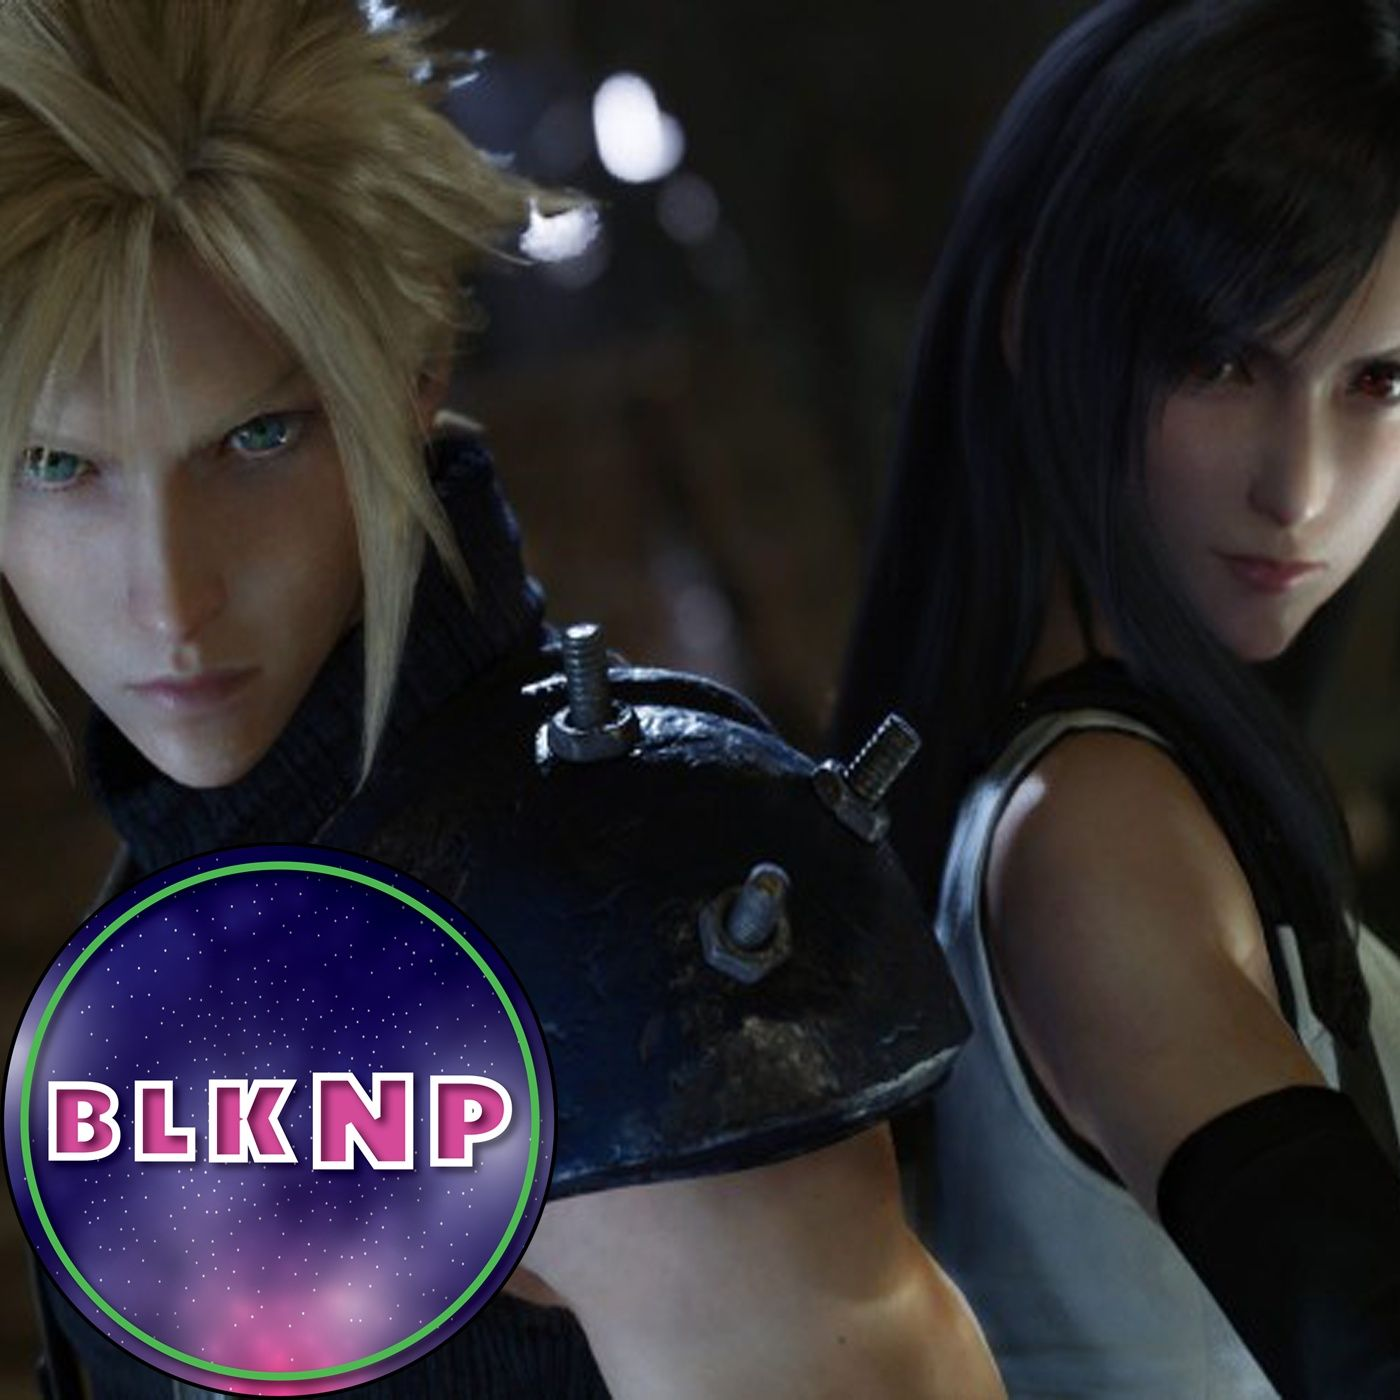 Final Fantasy VII Remake Review with JayEsper